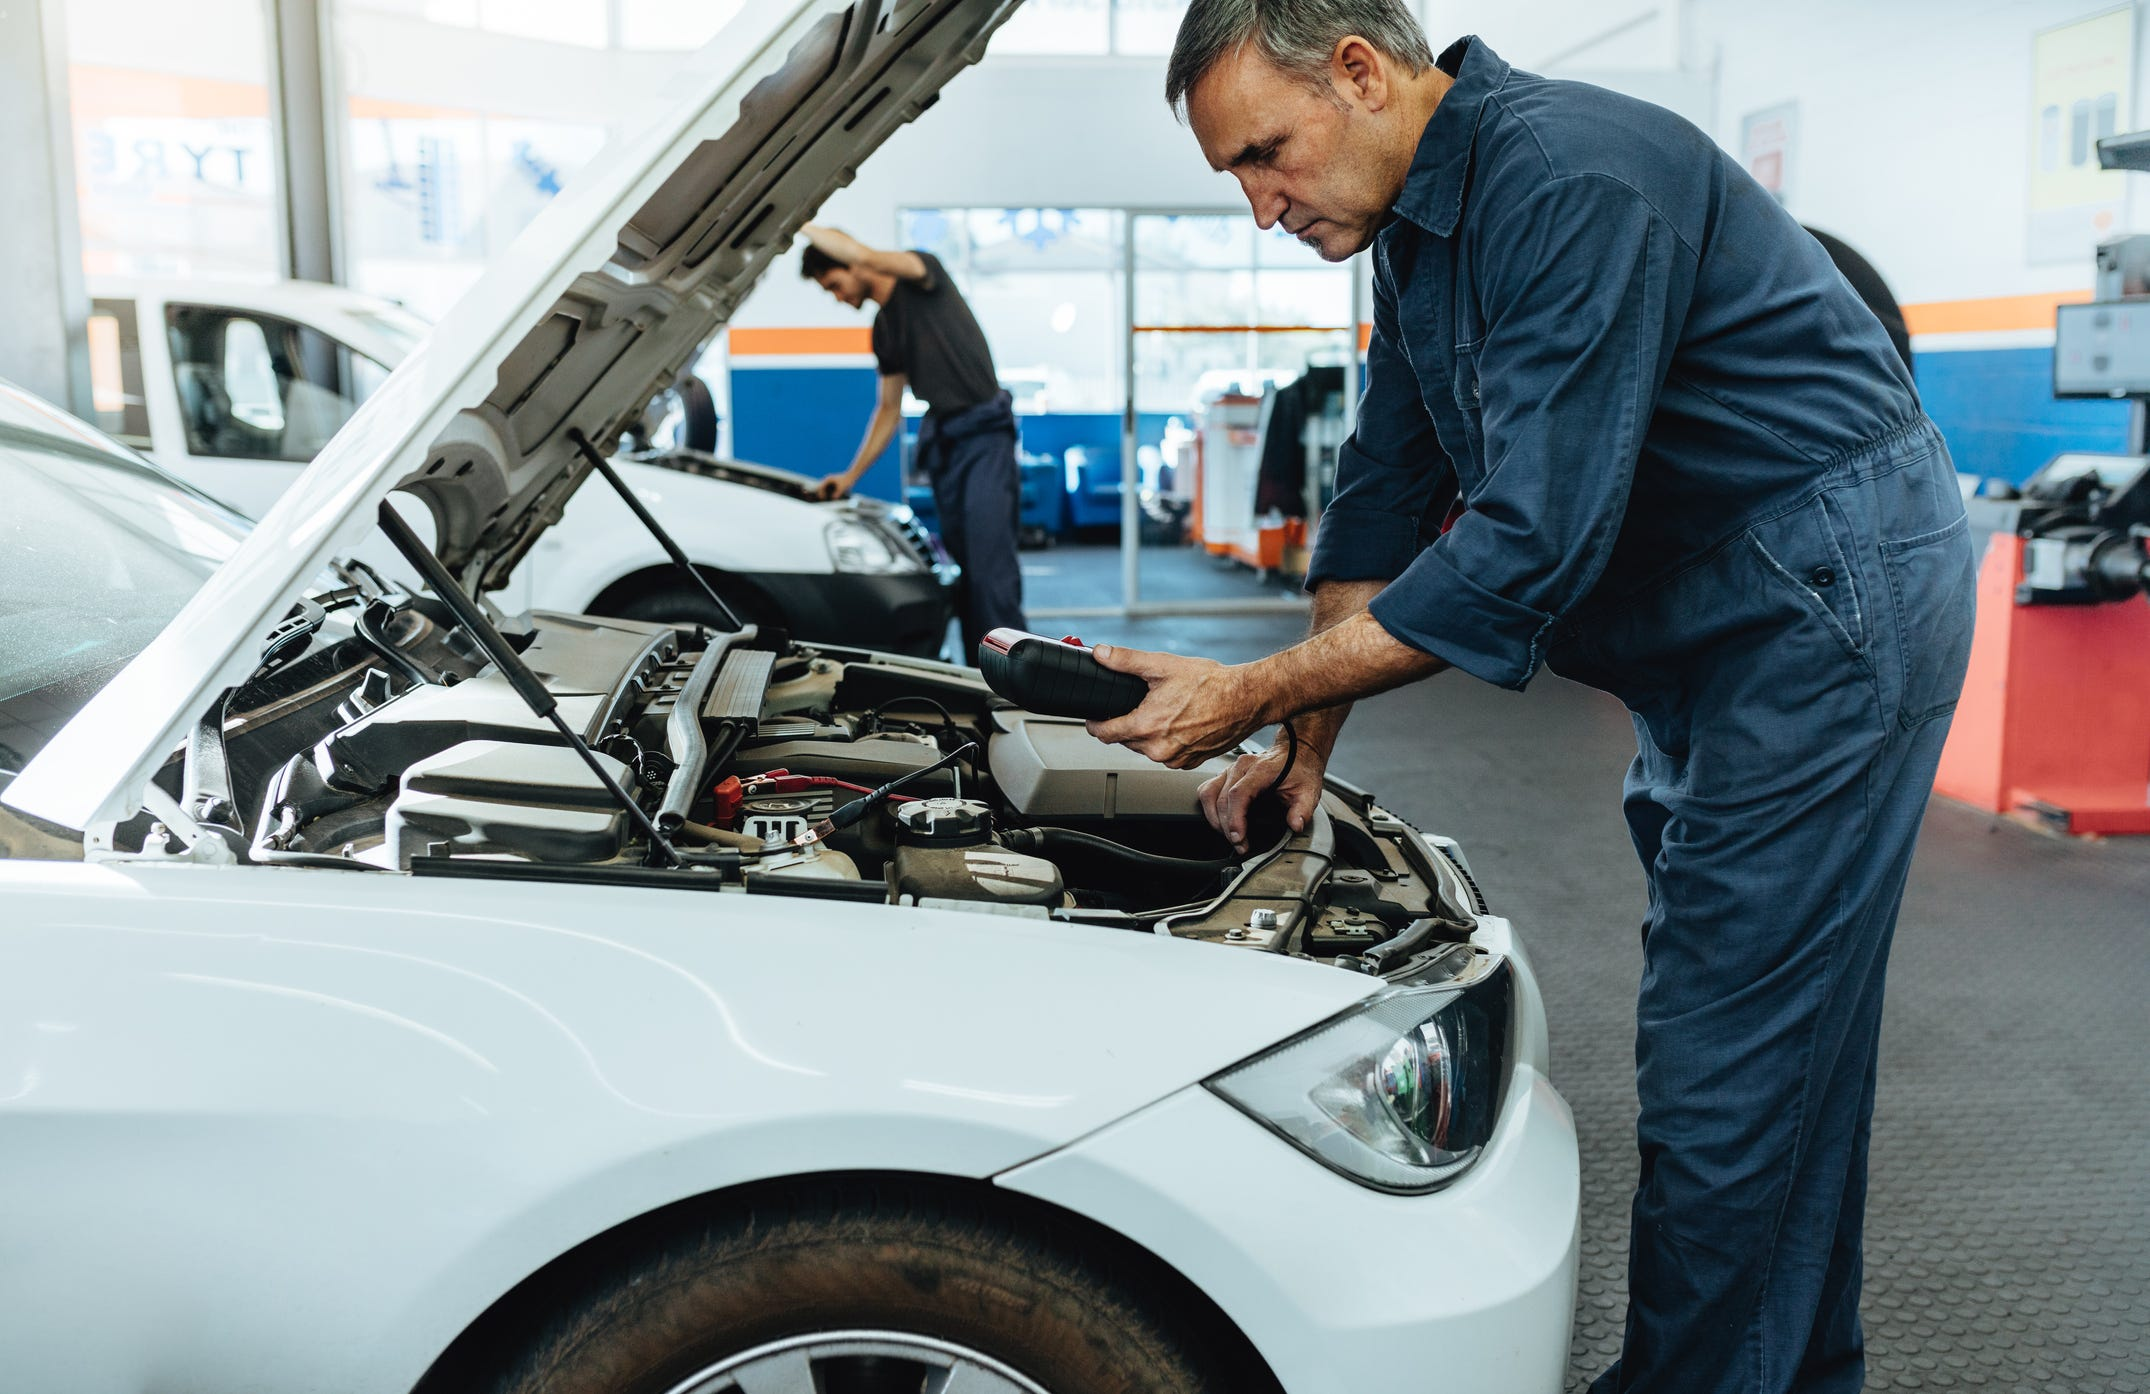 Millennials, Gen Zers pay more for car repairs than average American